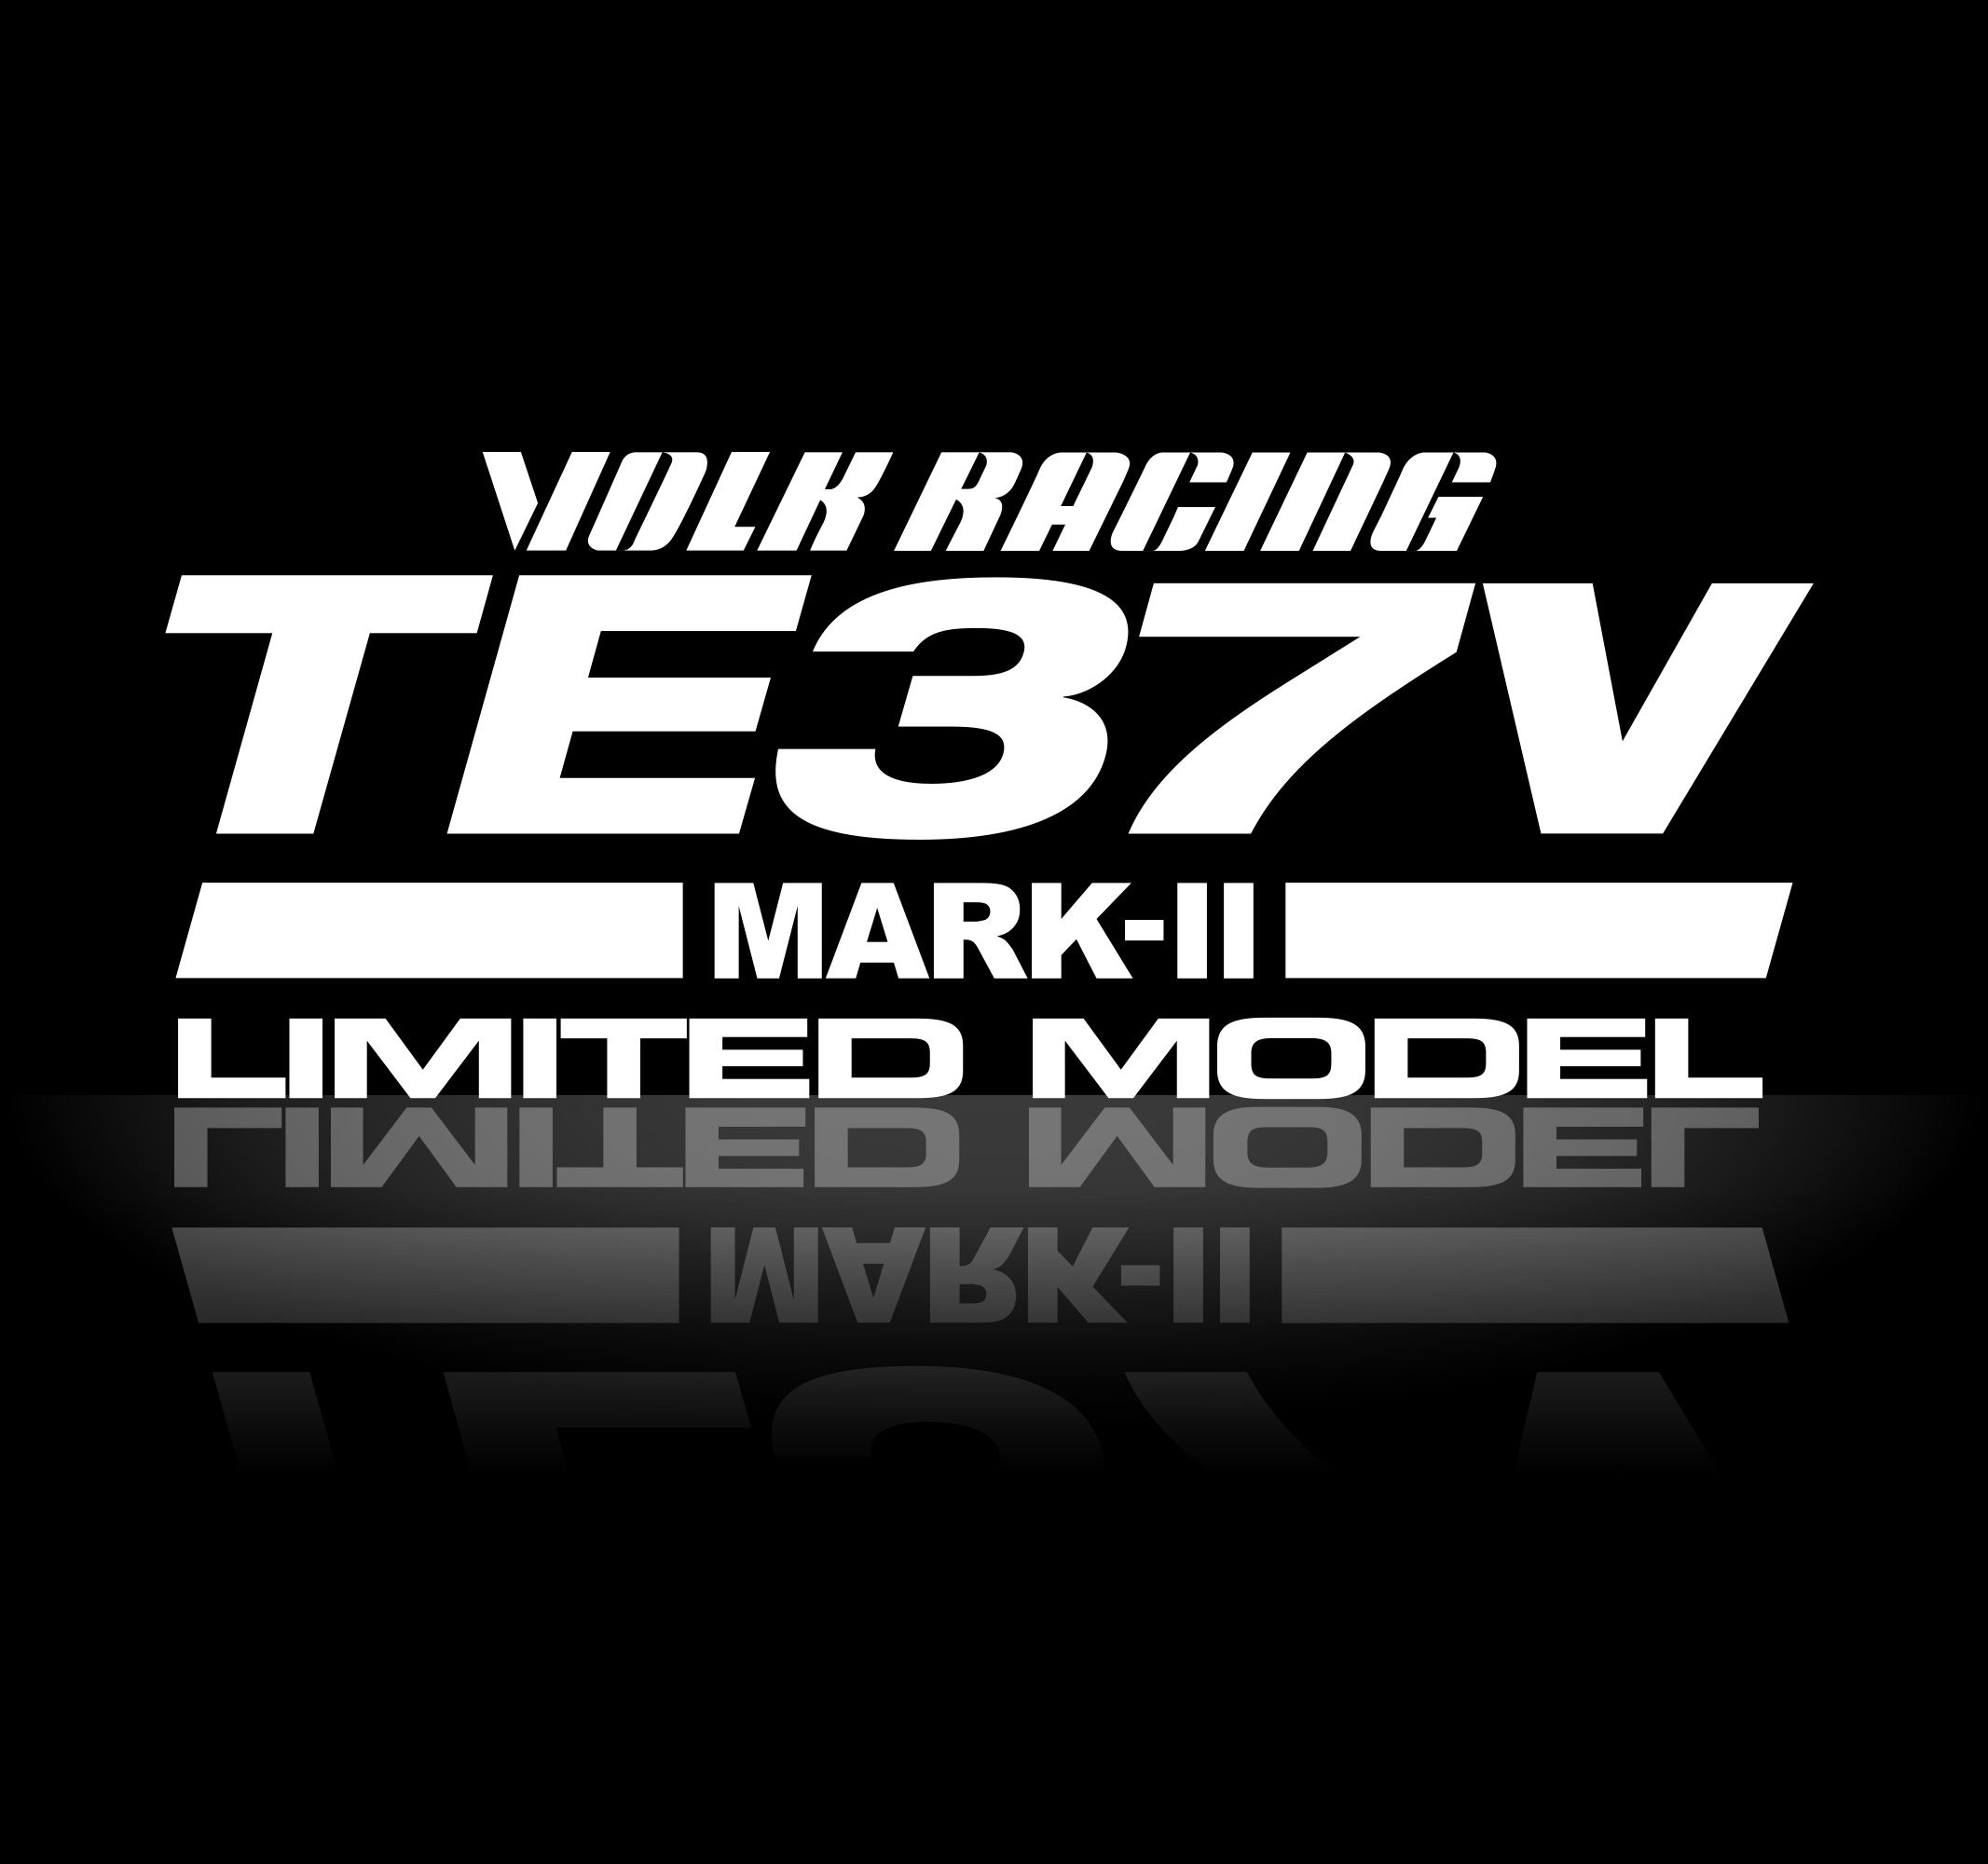 Volk Racing TE37V MARK-II LIMITED MODEL